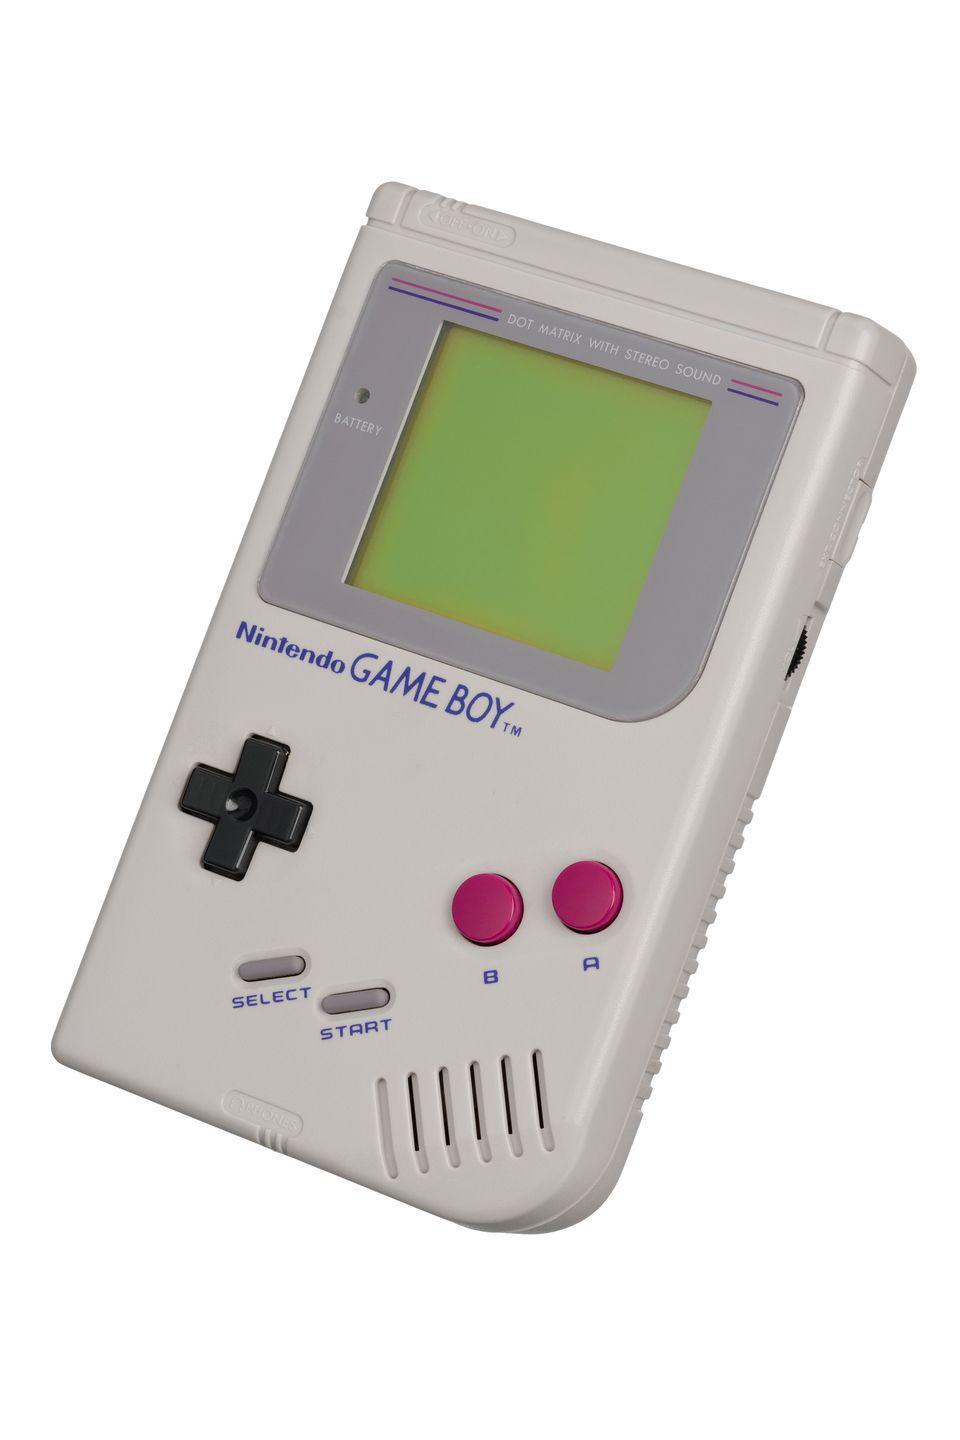 """<p>Before we were obsessed with our cell phones, we whiled away the hours on Nintendo's handheld game system, which was first release in the U.S. in 1989. These days, mint condition Game Boys go for hundreds and, if you have a special edition like the <a href=""""https://go.redirectingat.com?id=74968X1596630&url=http%3A%2F%2Fwww.ebay.com%2Fitm%2FUltra-Rare-Game-Boy-Light-Skeleton-Famitsu-Edition-System-MINT-IN-BOX-S027-%2F291707427749%3Fhash%3Ditem43eb1e1ba5%253Ag%253A4VAAAOSwP%257EtW5IfY&sref=https%3A%2F%2Fwww.countryliving.com%2Fshopping%2Fantiques%2Fg3141%2Fmost-valuable-toys-from-childhood%2F"""" rel=""""nofollow noopener"""" target=""""_blank"""" data-ylk=""""slk:Game Boy Light"""" class=""""link rapid-noclick-resp"""">Game Boy Light</a>, over $1,500. </p><p>Image via <a href=""""https://commons.wikimedia.org/wiki/User:Evan-Amos/VOGM/GameBoy"""" rel=""""nofollow noopener"""" target=""""_blank"""" data-ylk=""""slk:Evan-Amos/Wikimedia Commons"""" class=""""link rapid-noclick-resp"""">Evan-Amos/Wikimedia Commons</a></p>"""